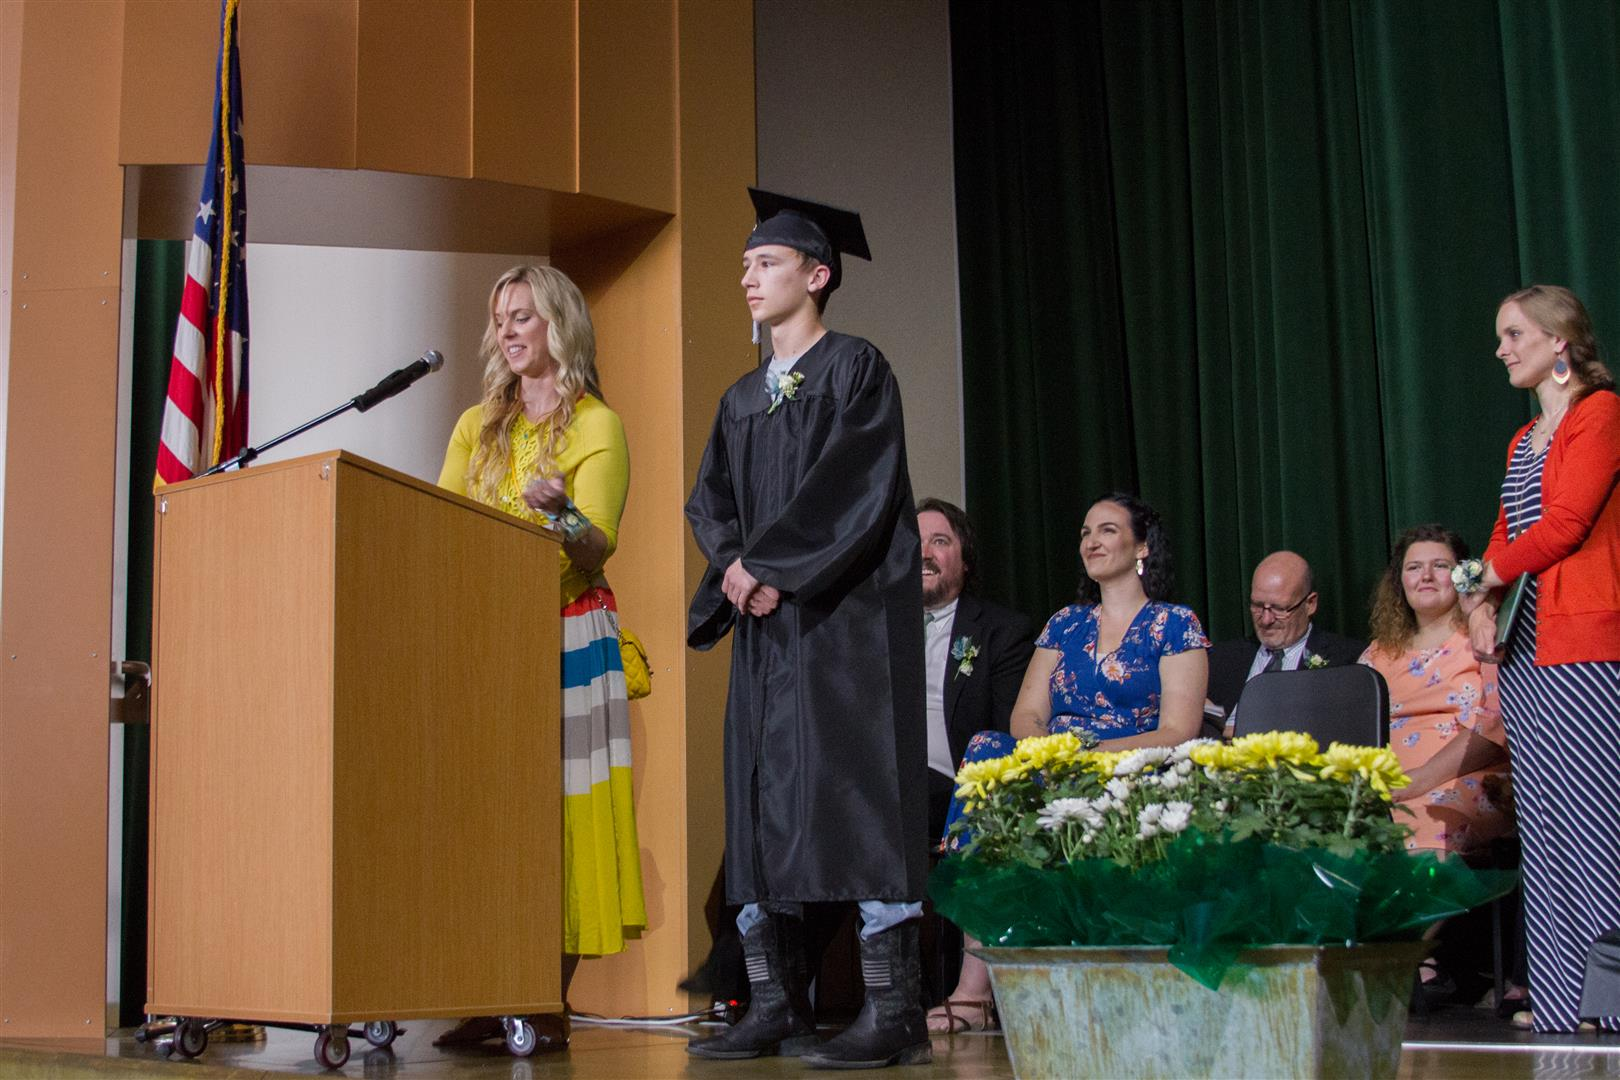 1560450002-team-high-class-of-2019-commencement-23__large_